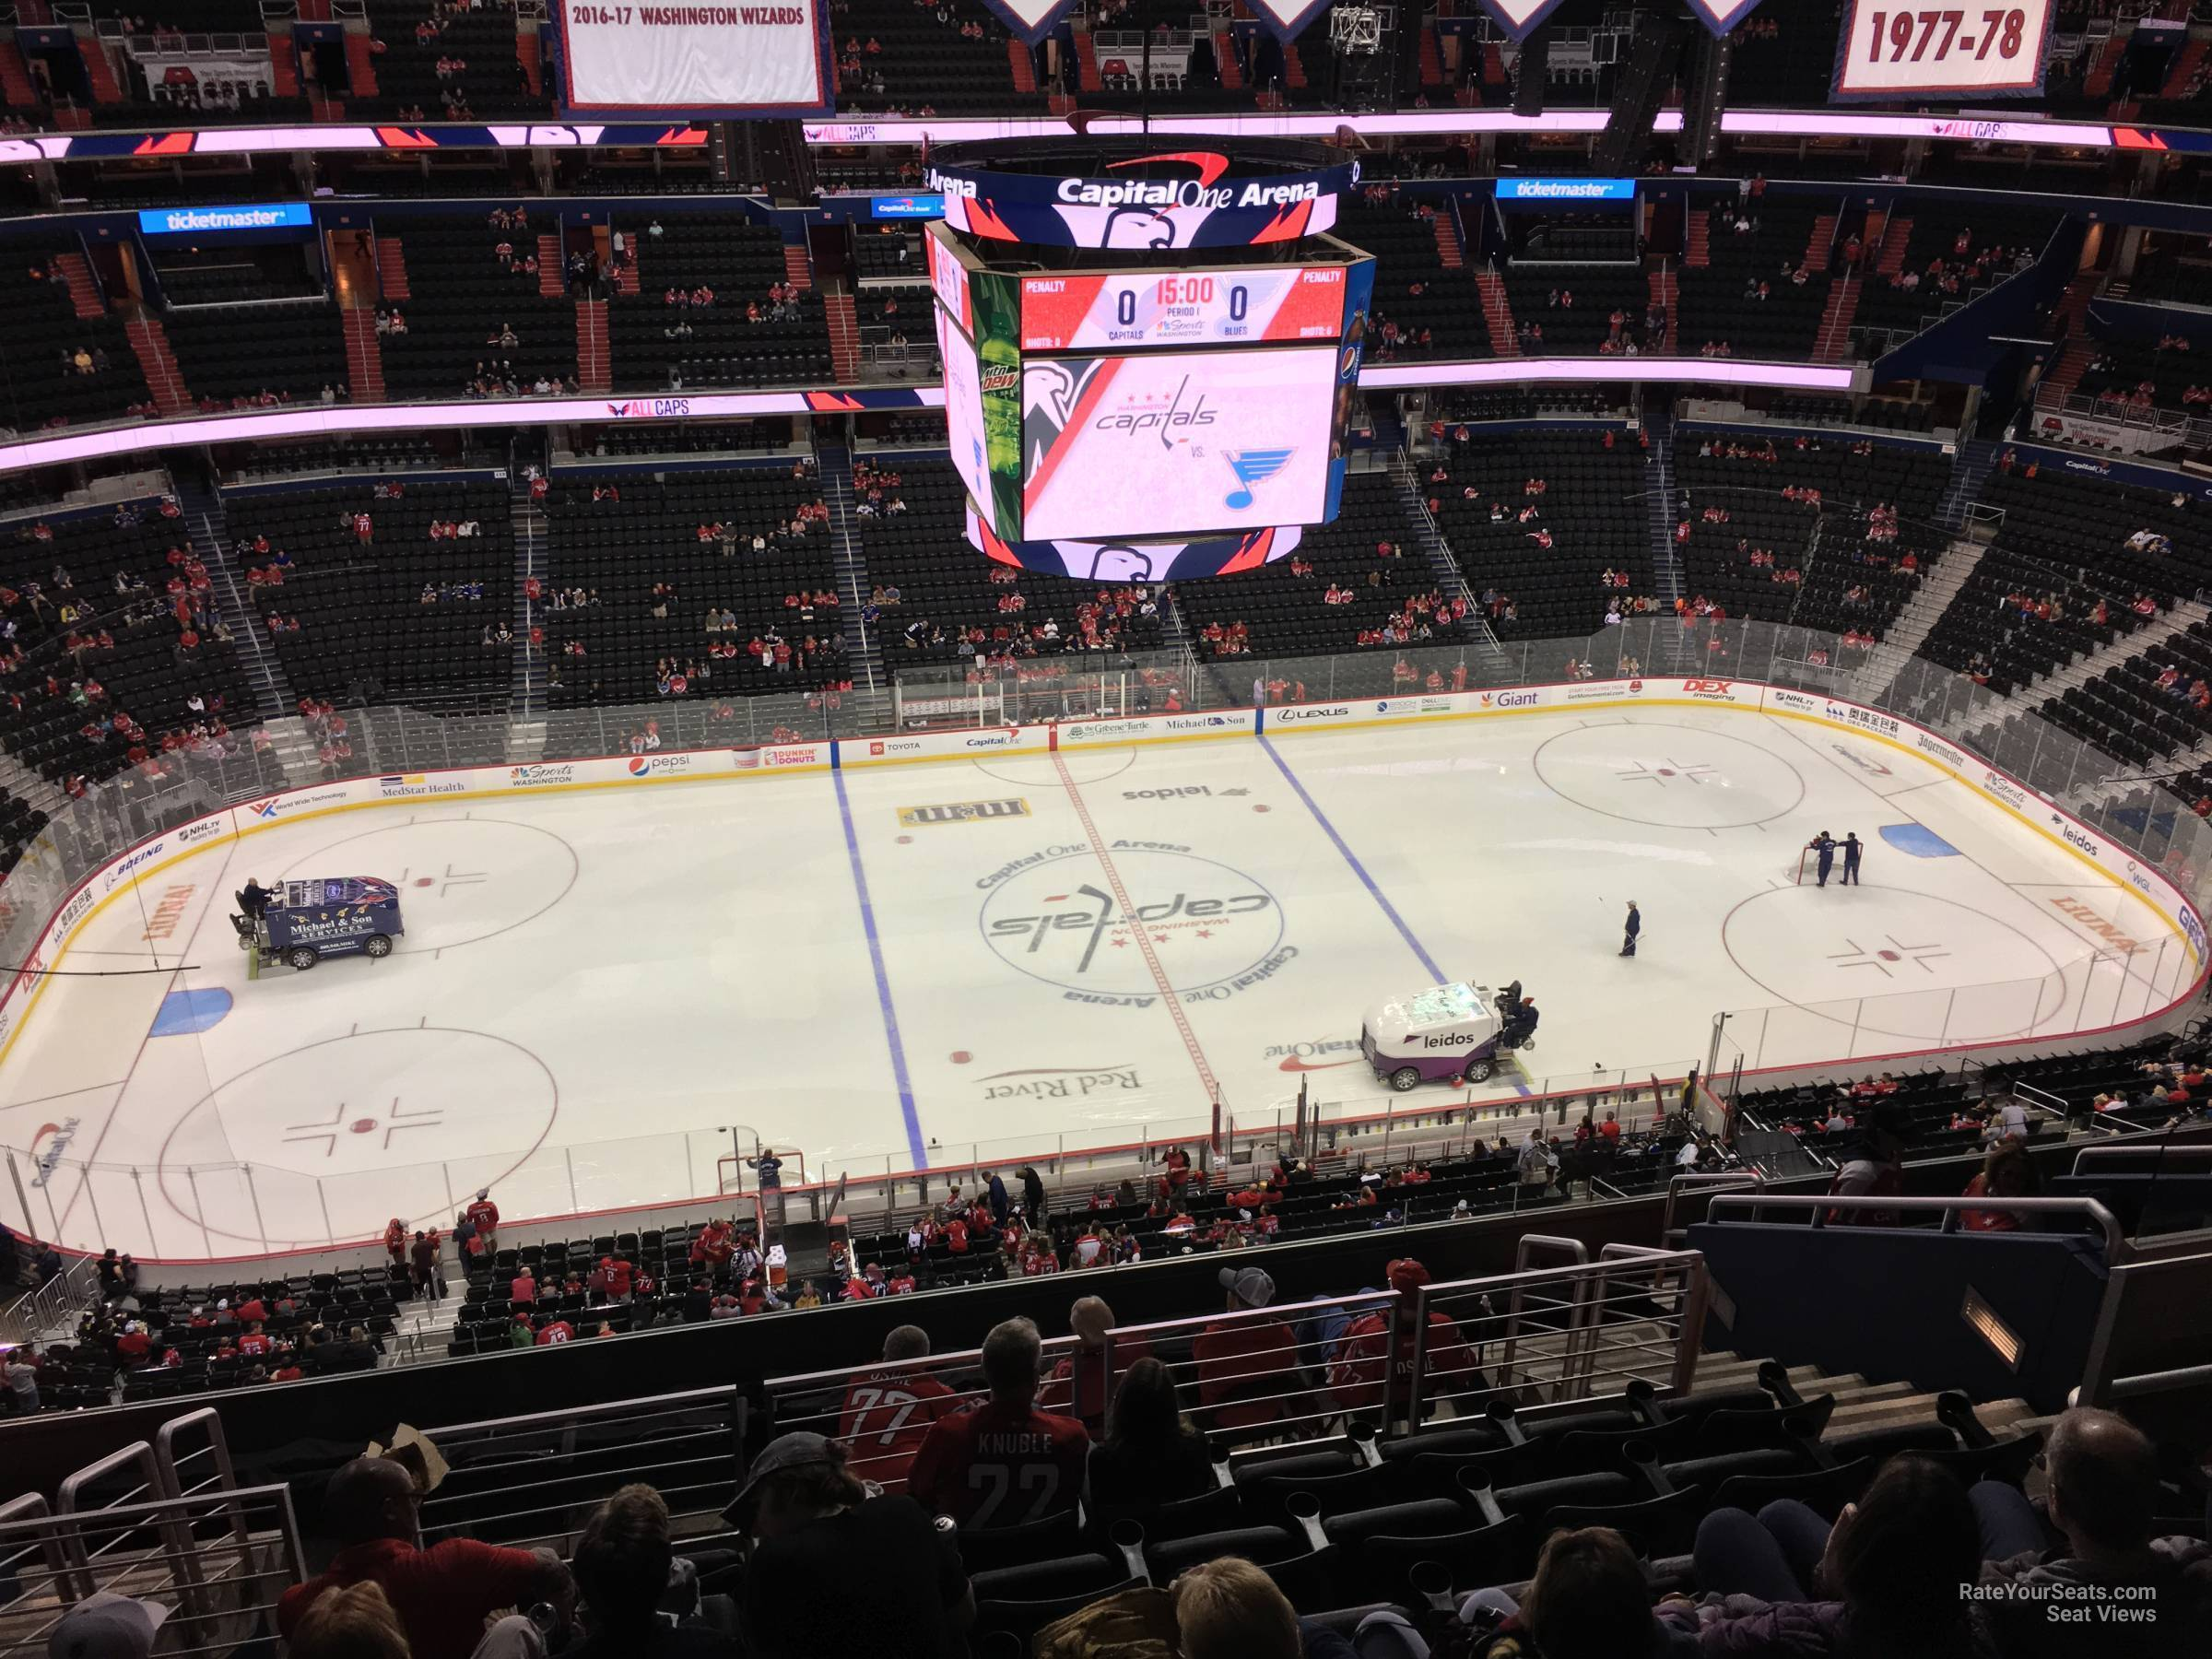 Section 433 seat view